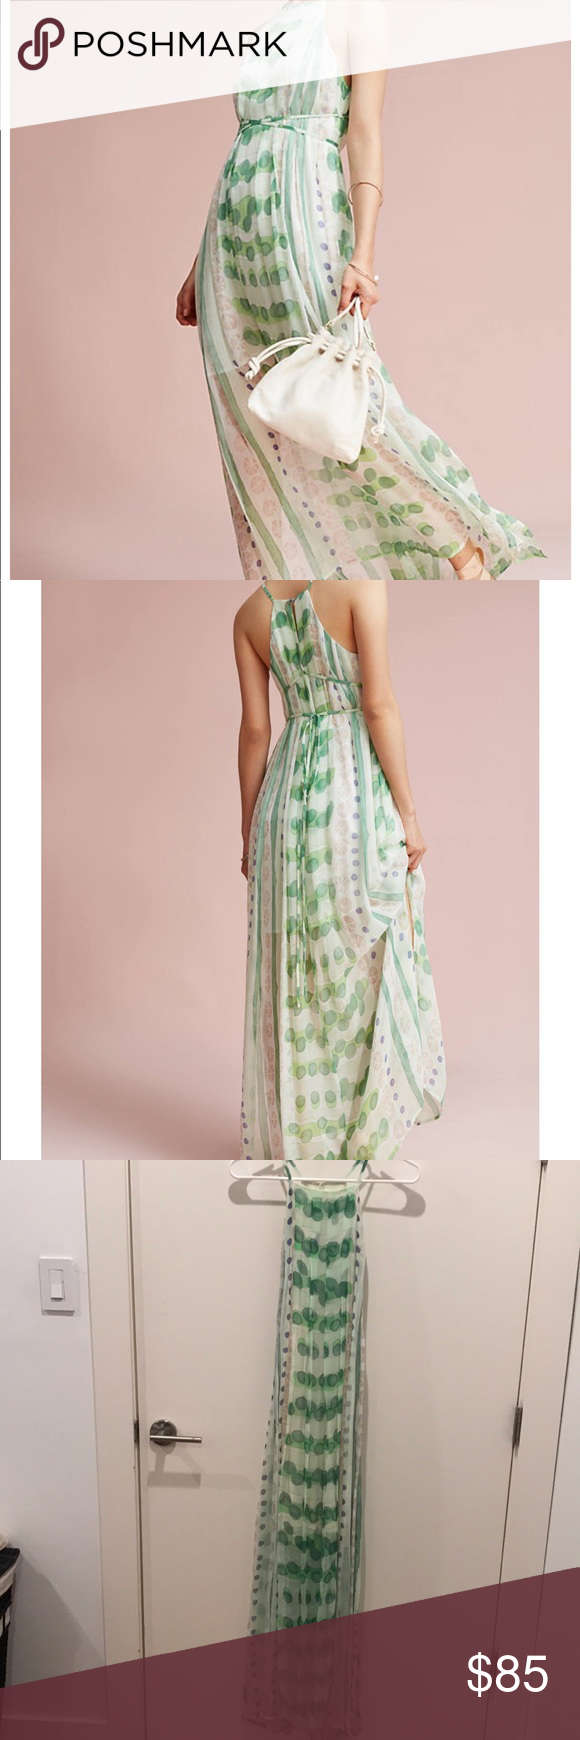 Nwt Anthropologie Vera Silk Maxi Dress Size S A Garden Inspired Pastel Print Ready True To New With Tags On Back